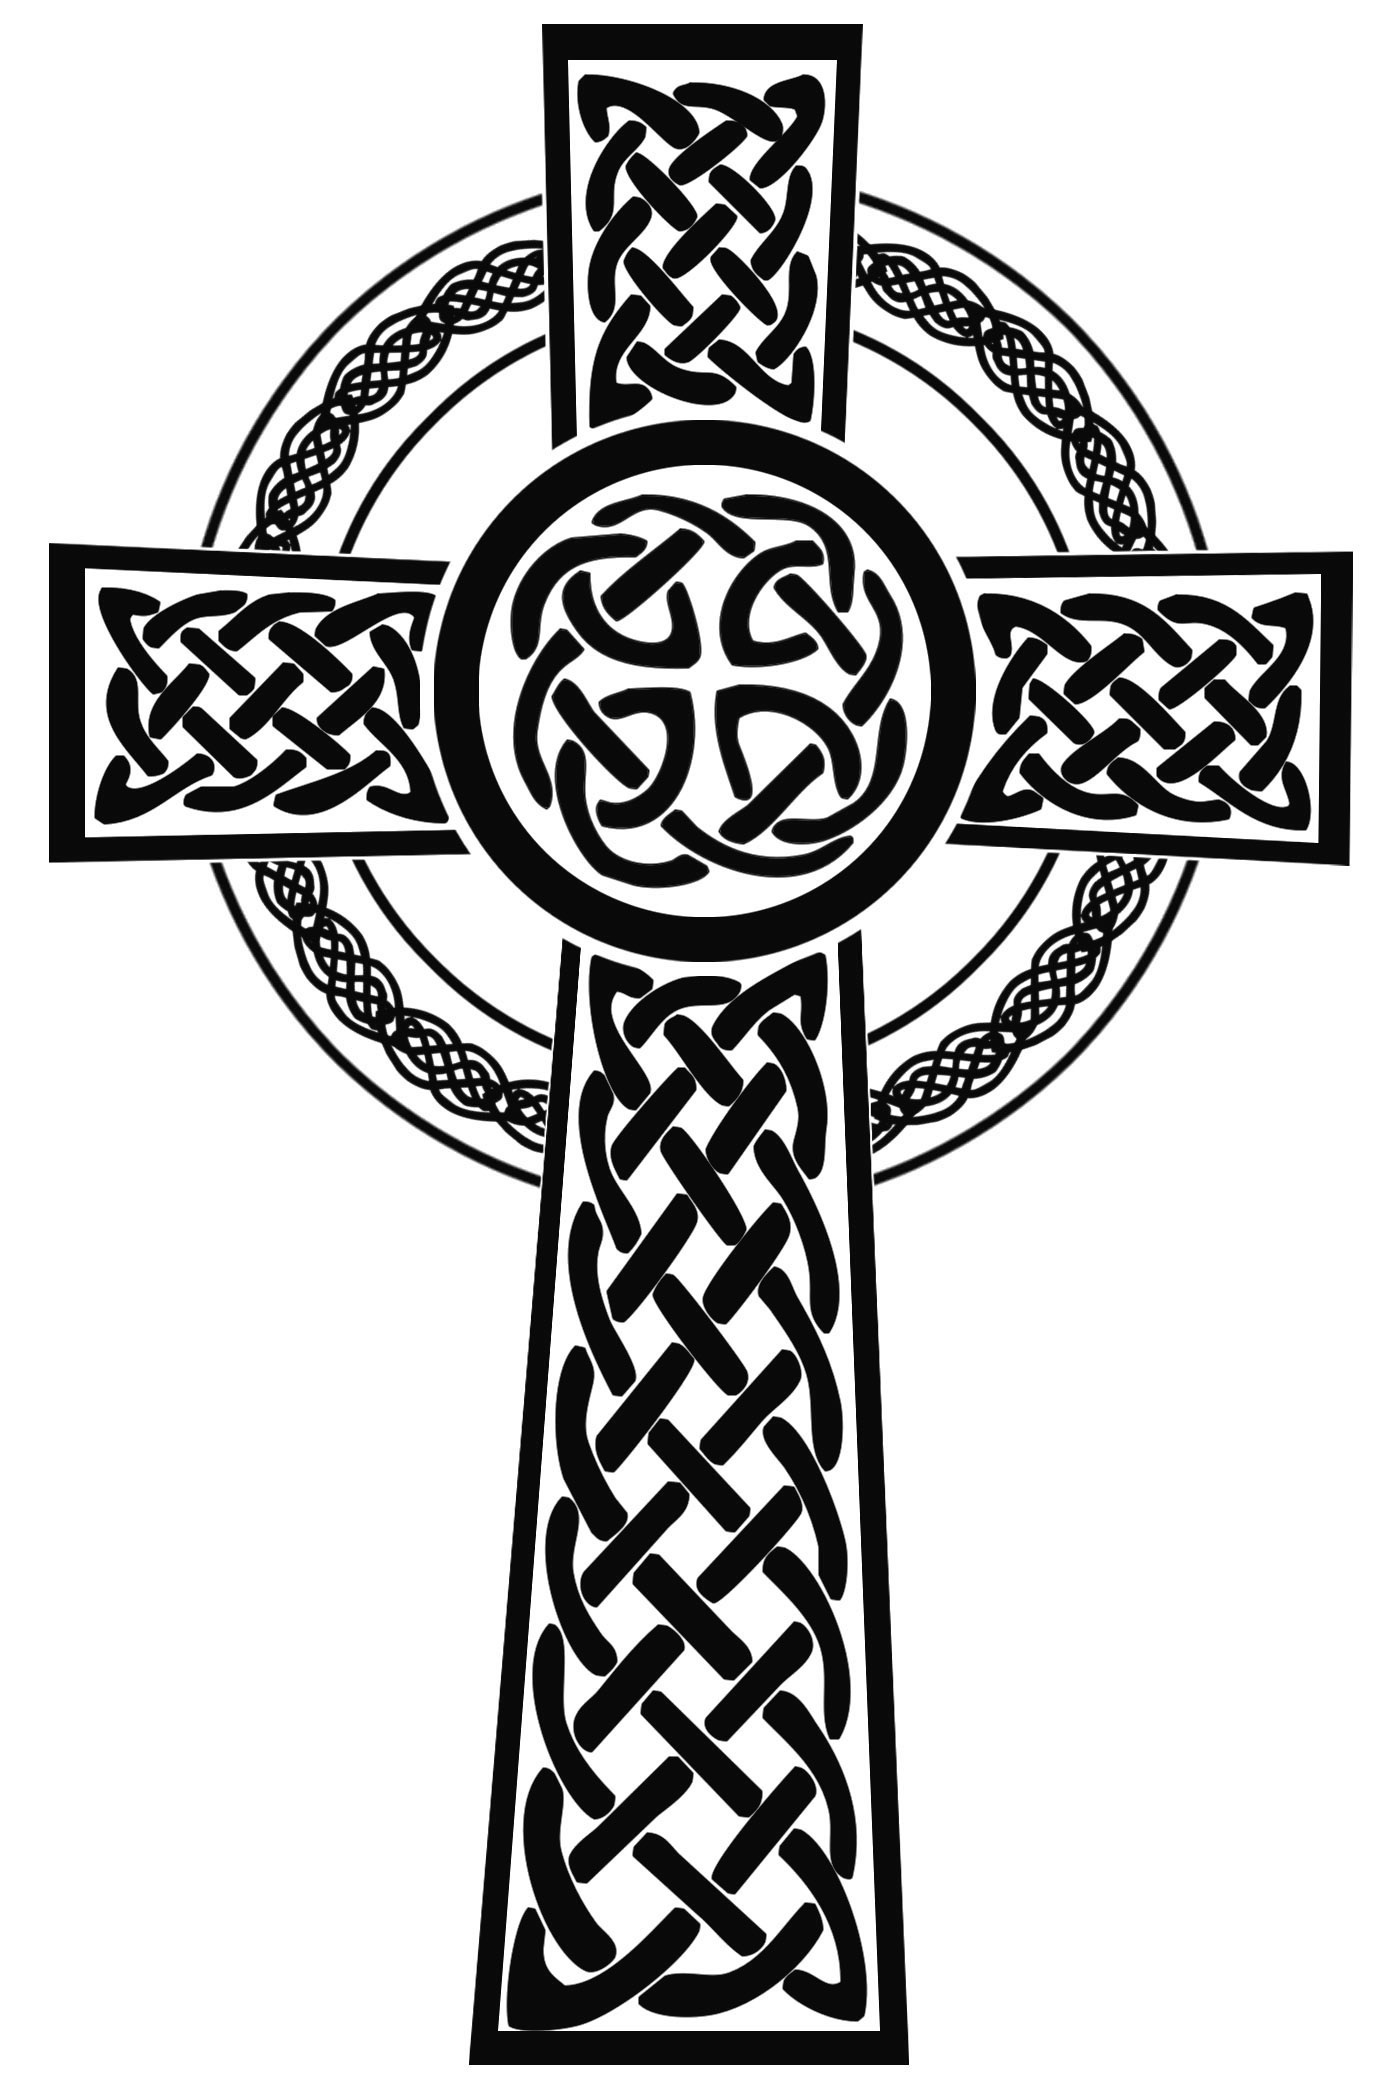 Related With Celtic Cross Clip Art-Related With Celtic Cross Clip Art-18